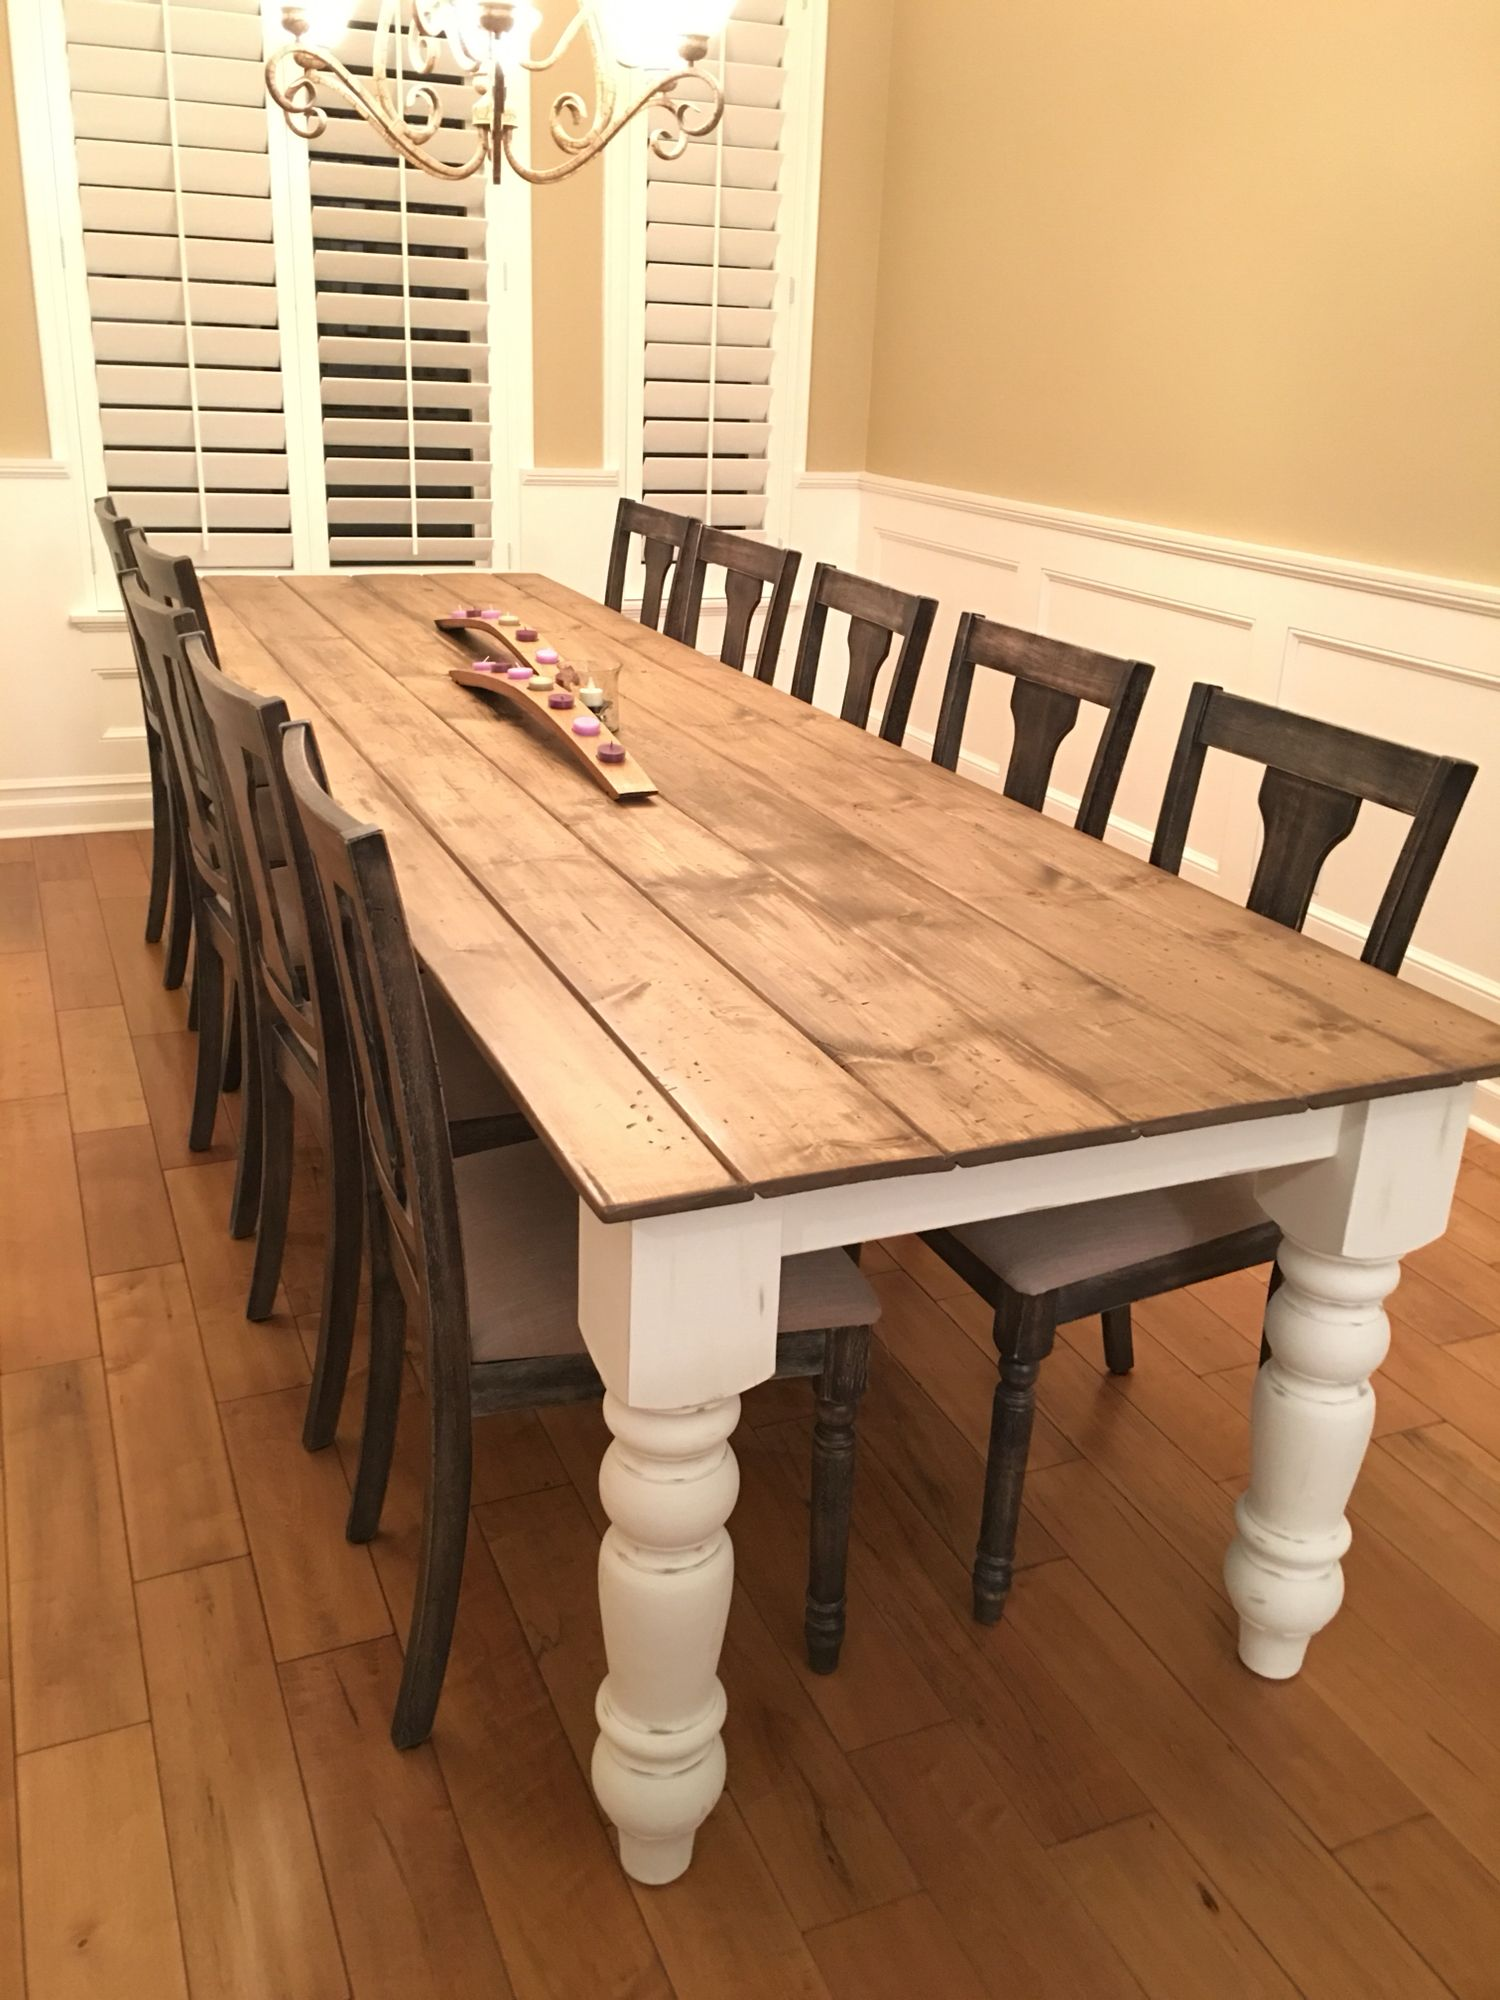 Diy farmhouse table my husband made my 10 foot 8 inch Diy farmhouse table